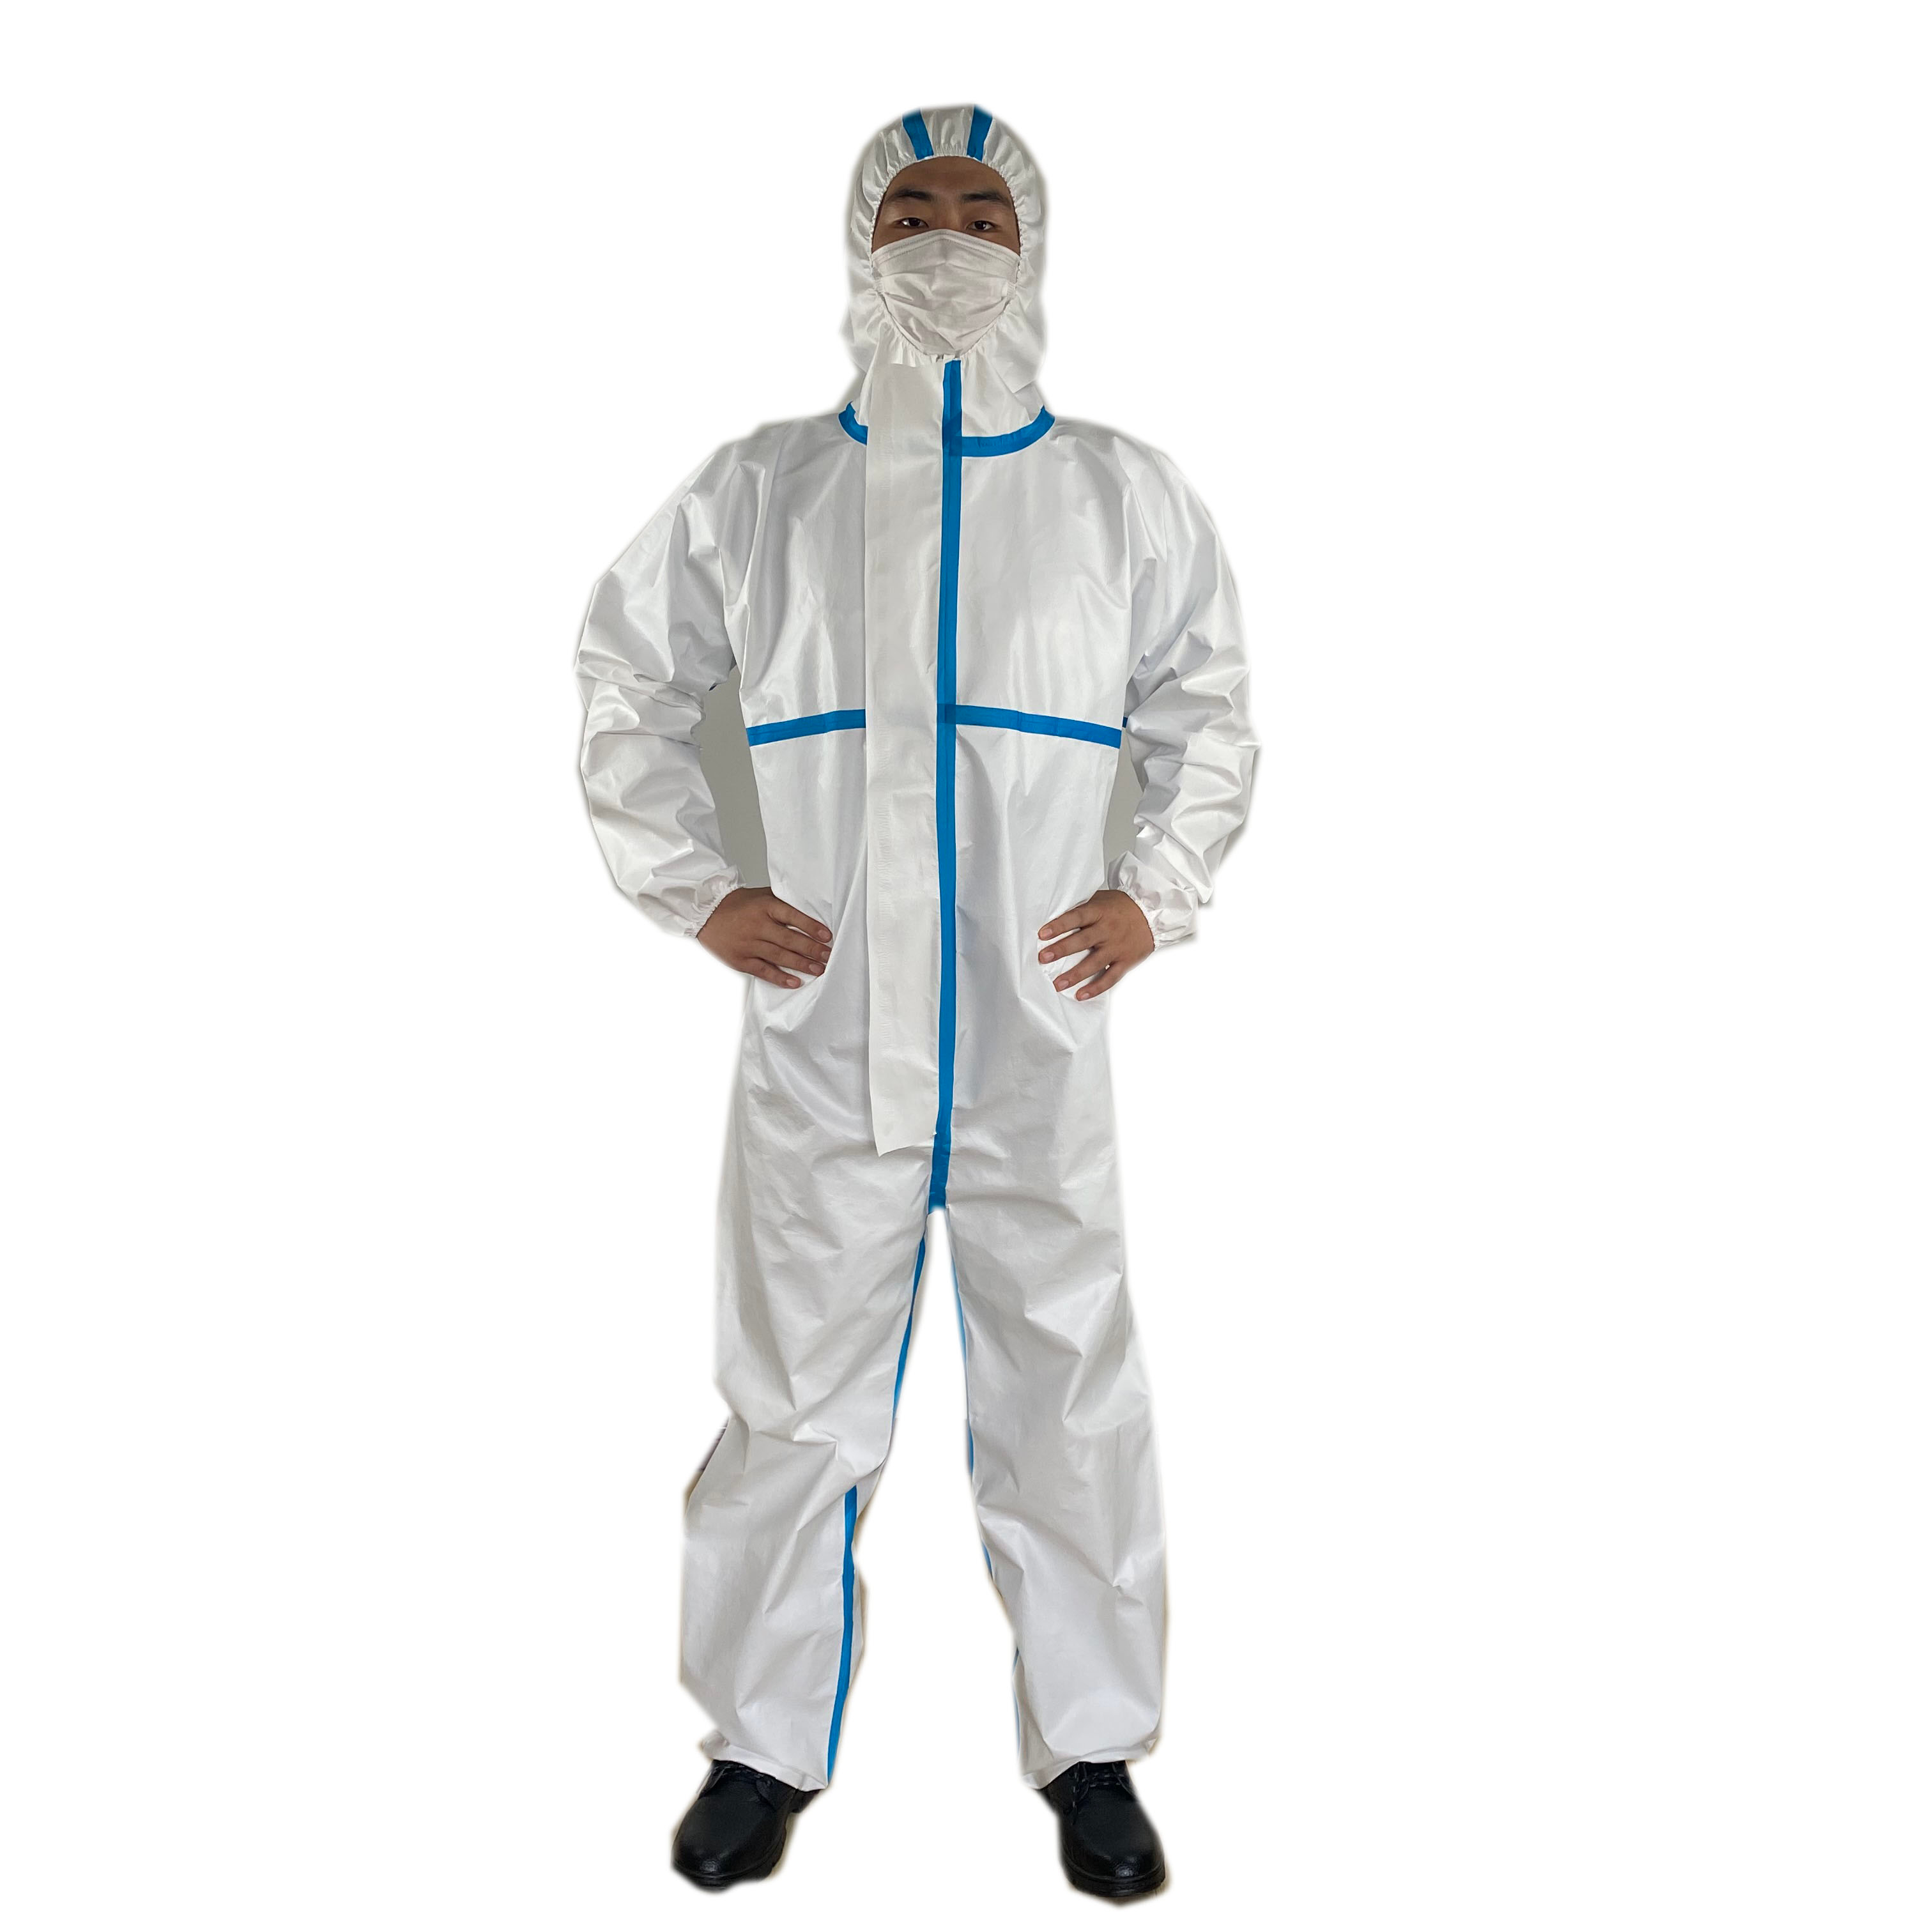 Safety Work Clothes For Construct Isolation Medical Disposable Garment Disposable Protective Coveralls Working Overalls - KingCare | KingCare.net